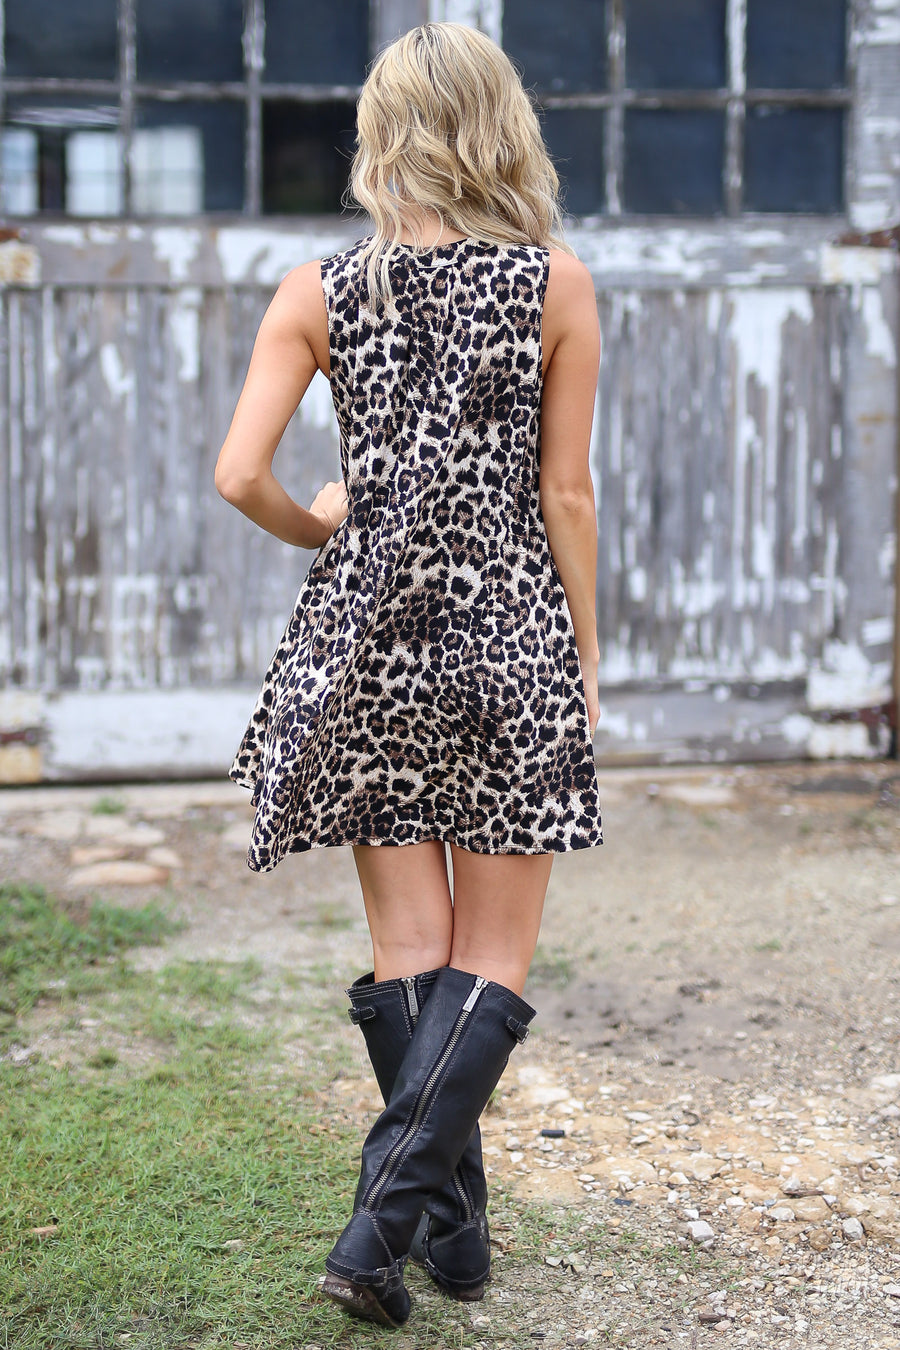 Something Just Like This Dress - Leopard